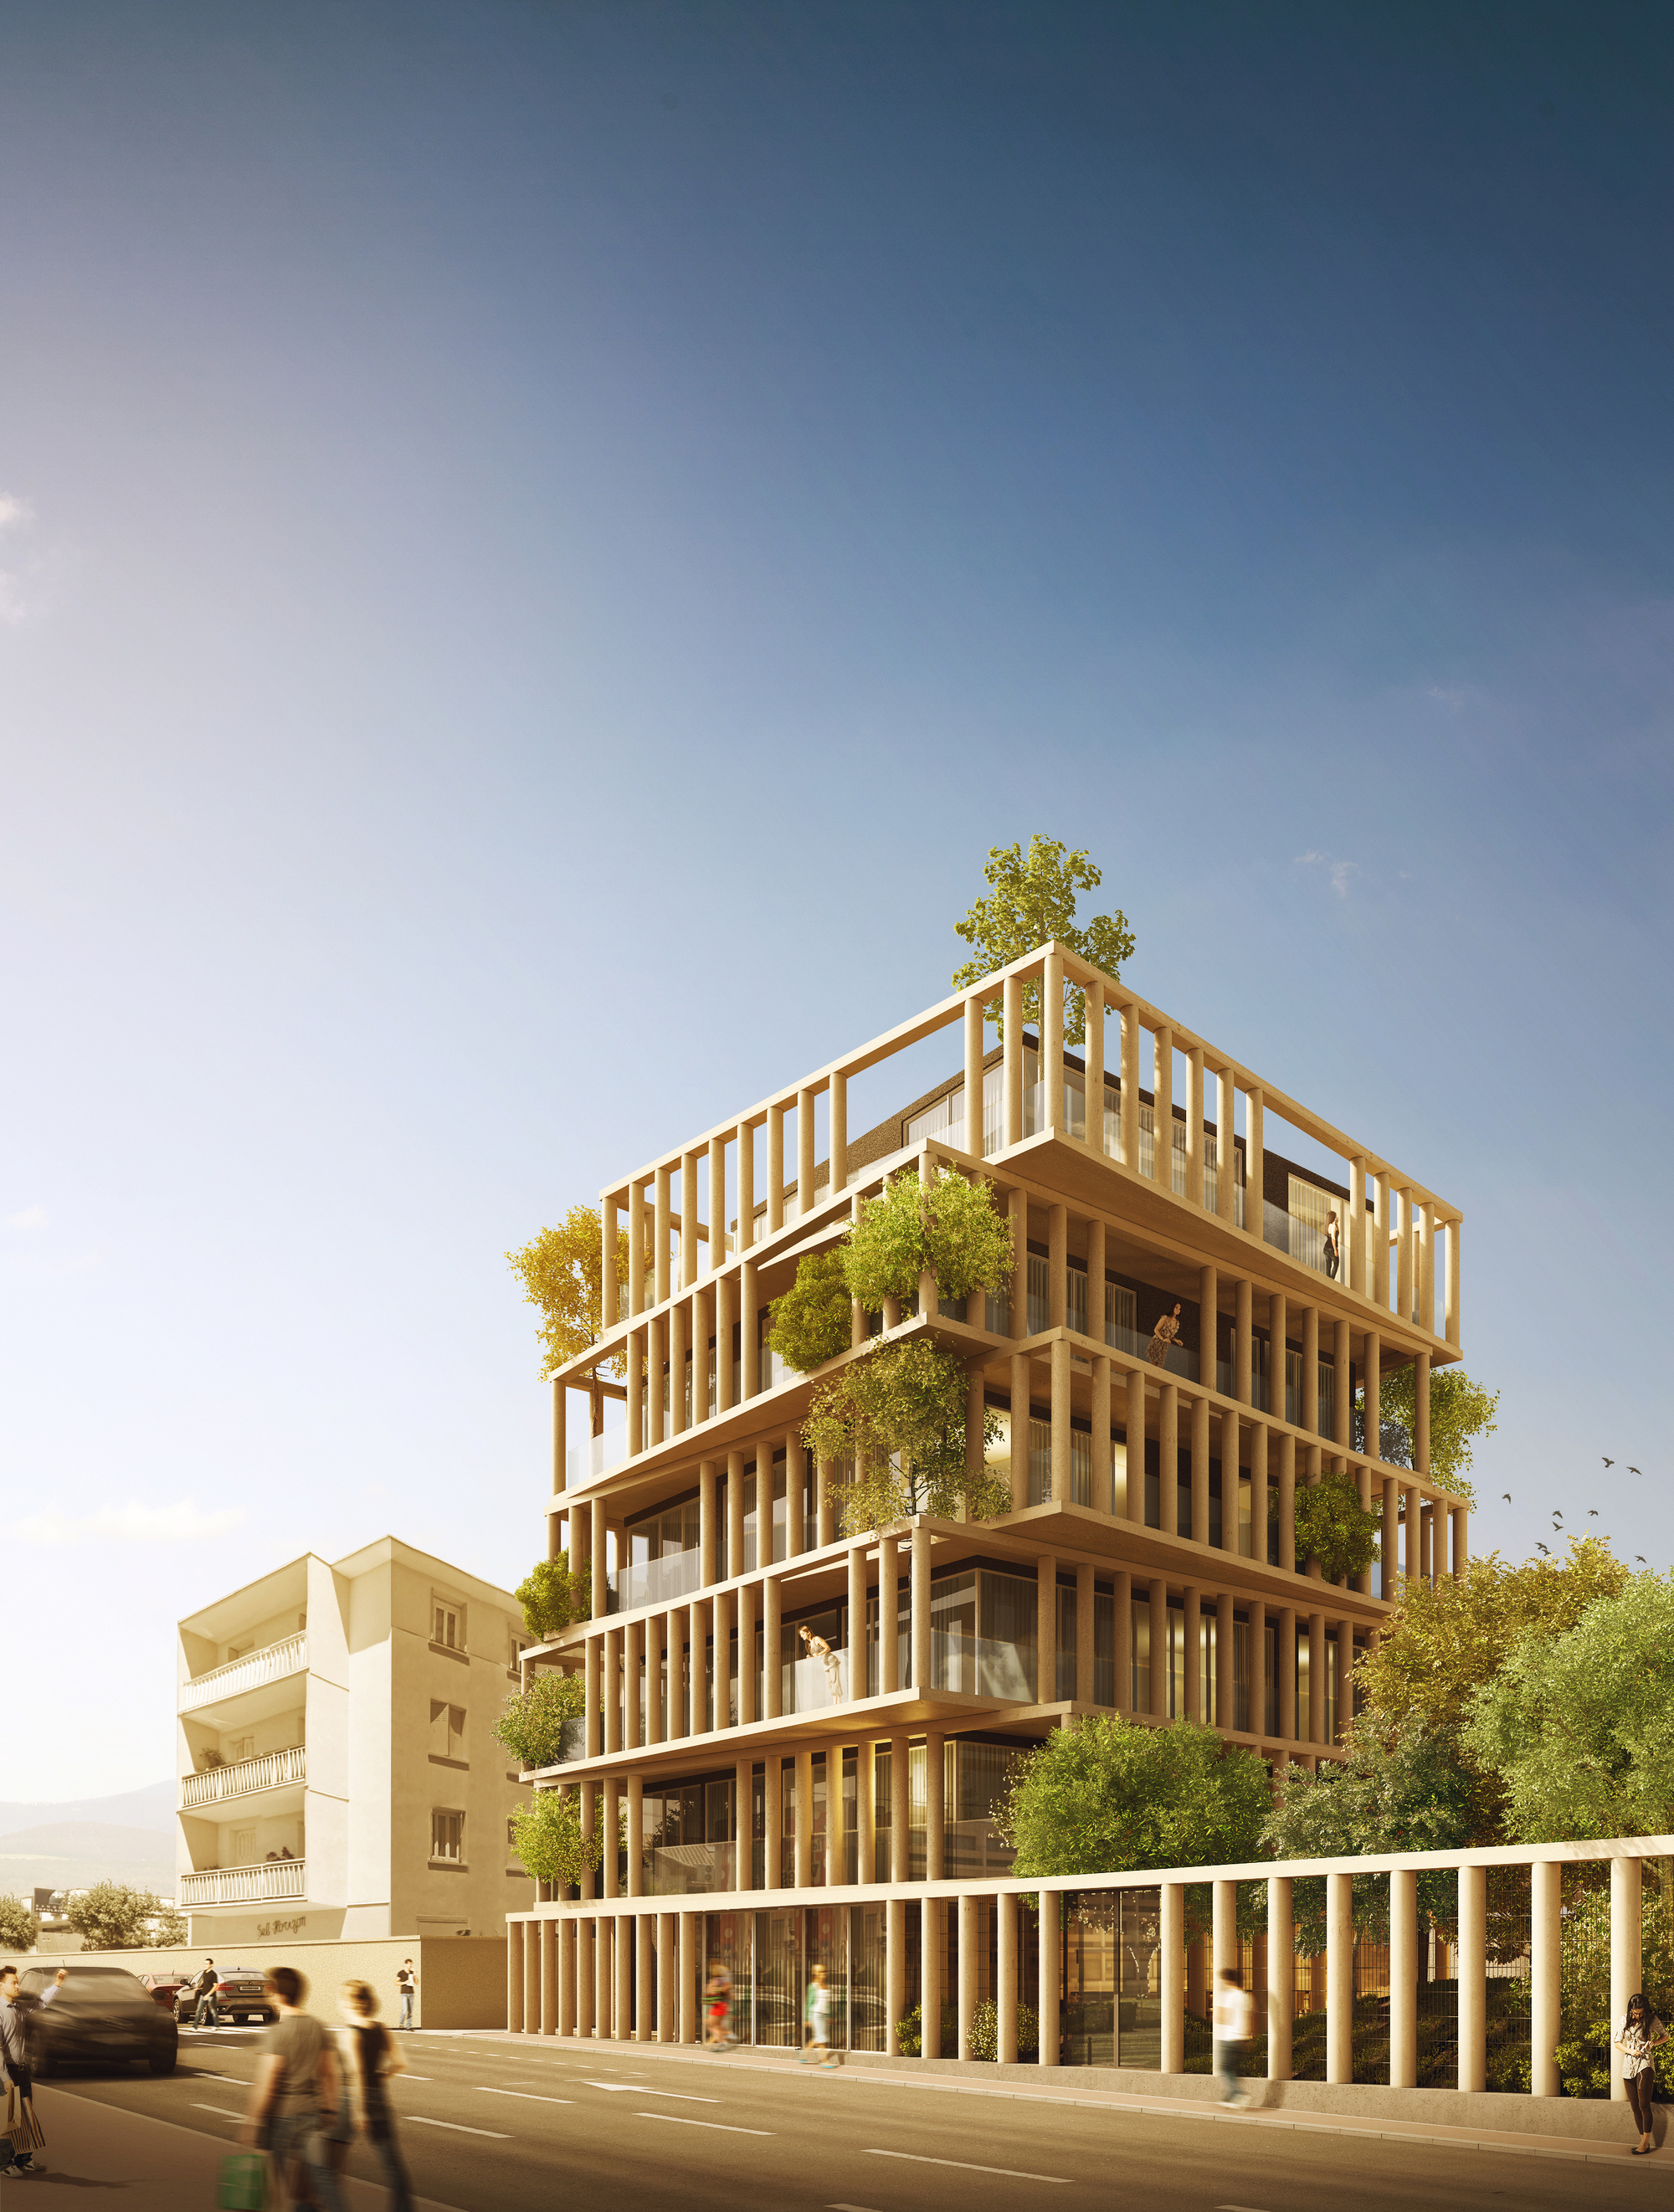 URBAN AGENCYs Luxury Apartment Design Twists French Planning